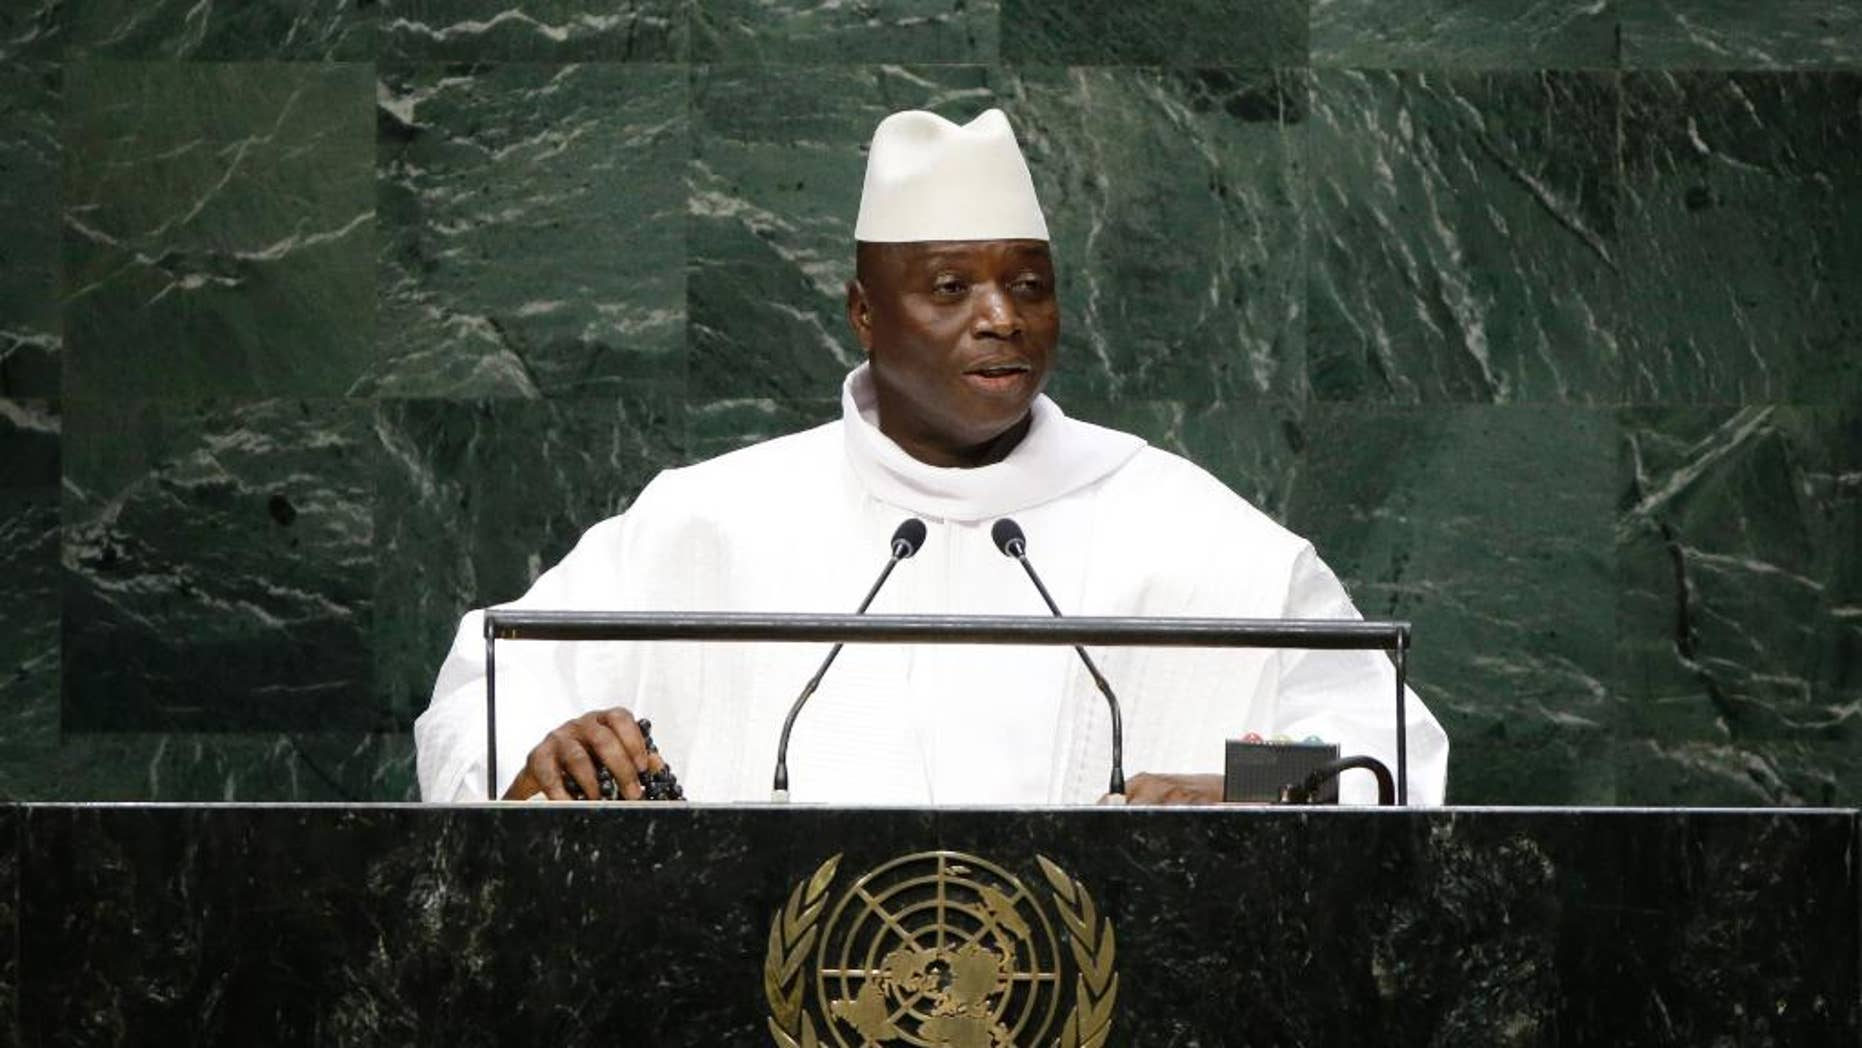 """FILE - In this Thursday, Sept. 25, 2014, file photo, Gambia's President Al Hadji Yahya Jammeh addresses the 69th session of the United Nations General Assembly at the United Nations headquarters. Gambia accused European countries of """"racist and inhuman behavior"""" for deliberately causing boats carrying black African migrants to sink. (AP Photo/Frank Franklin II, File)"""